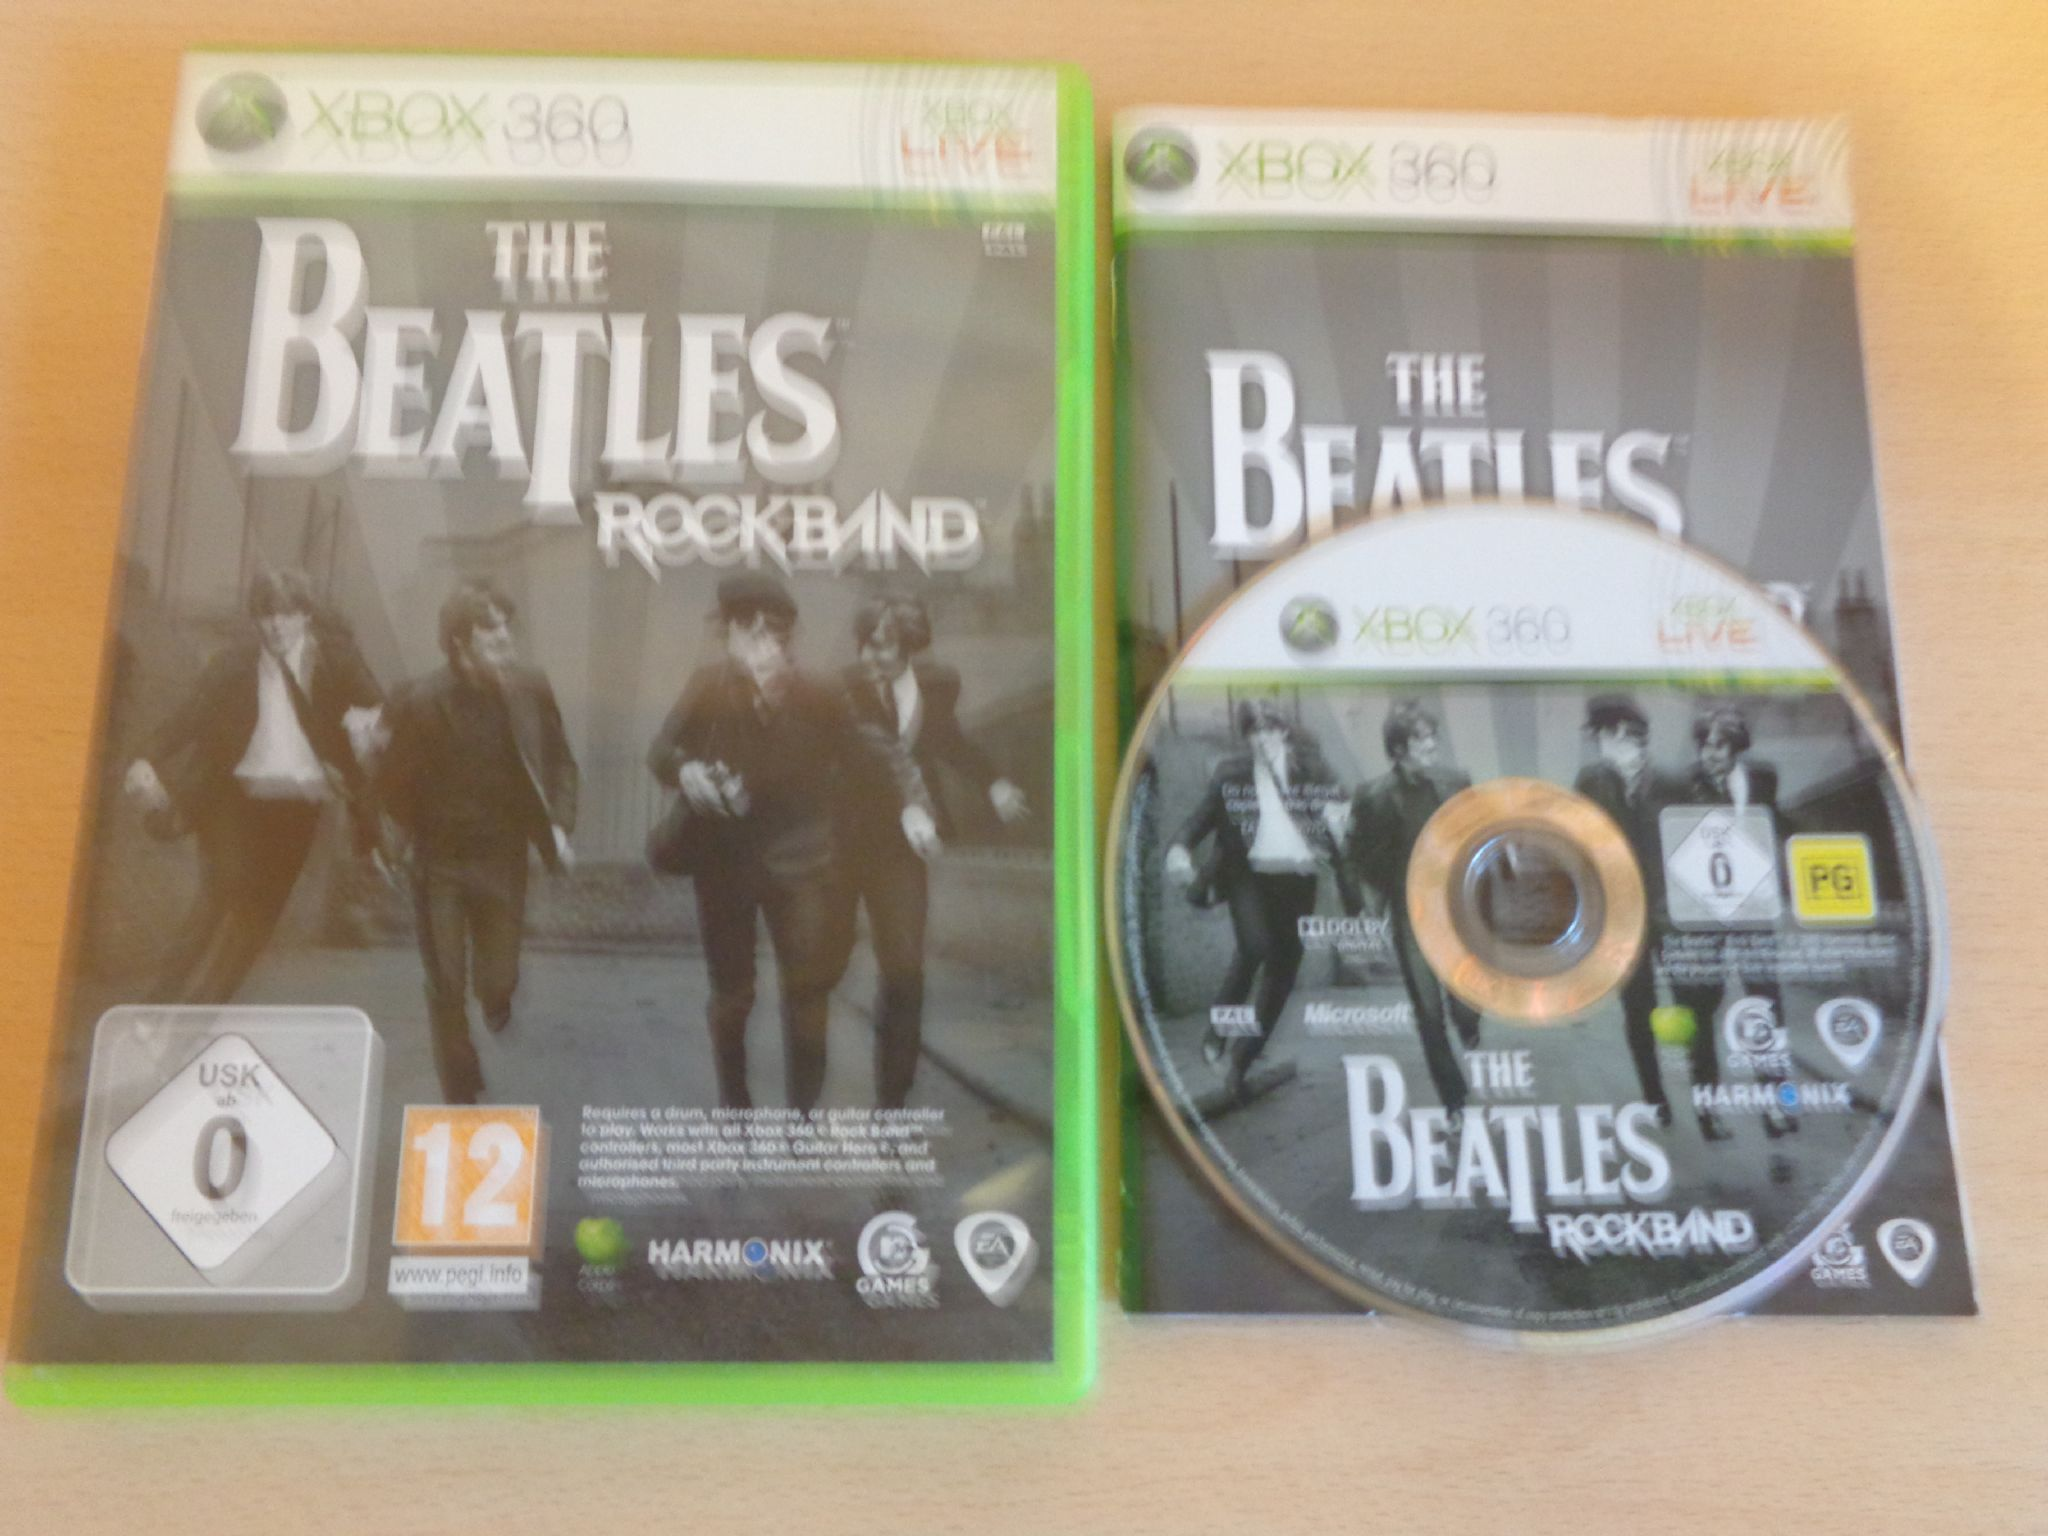 The Beatles Rock Band (Xbox 360)